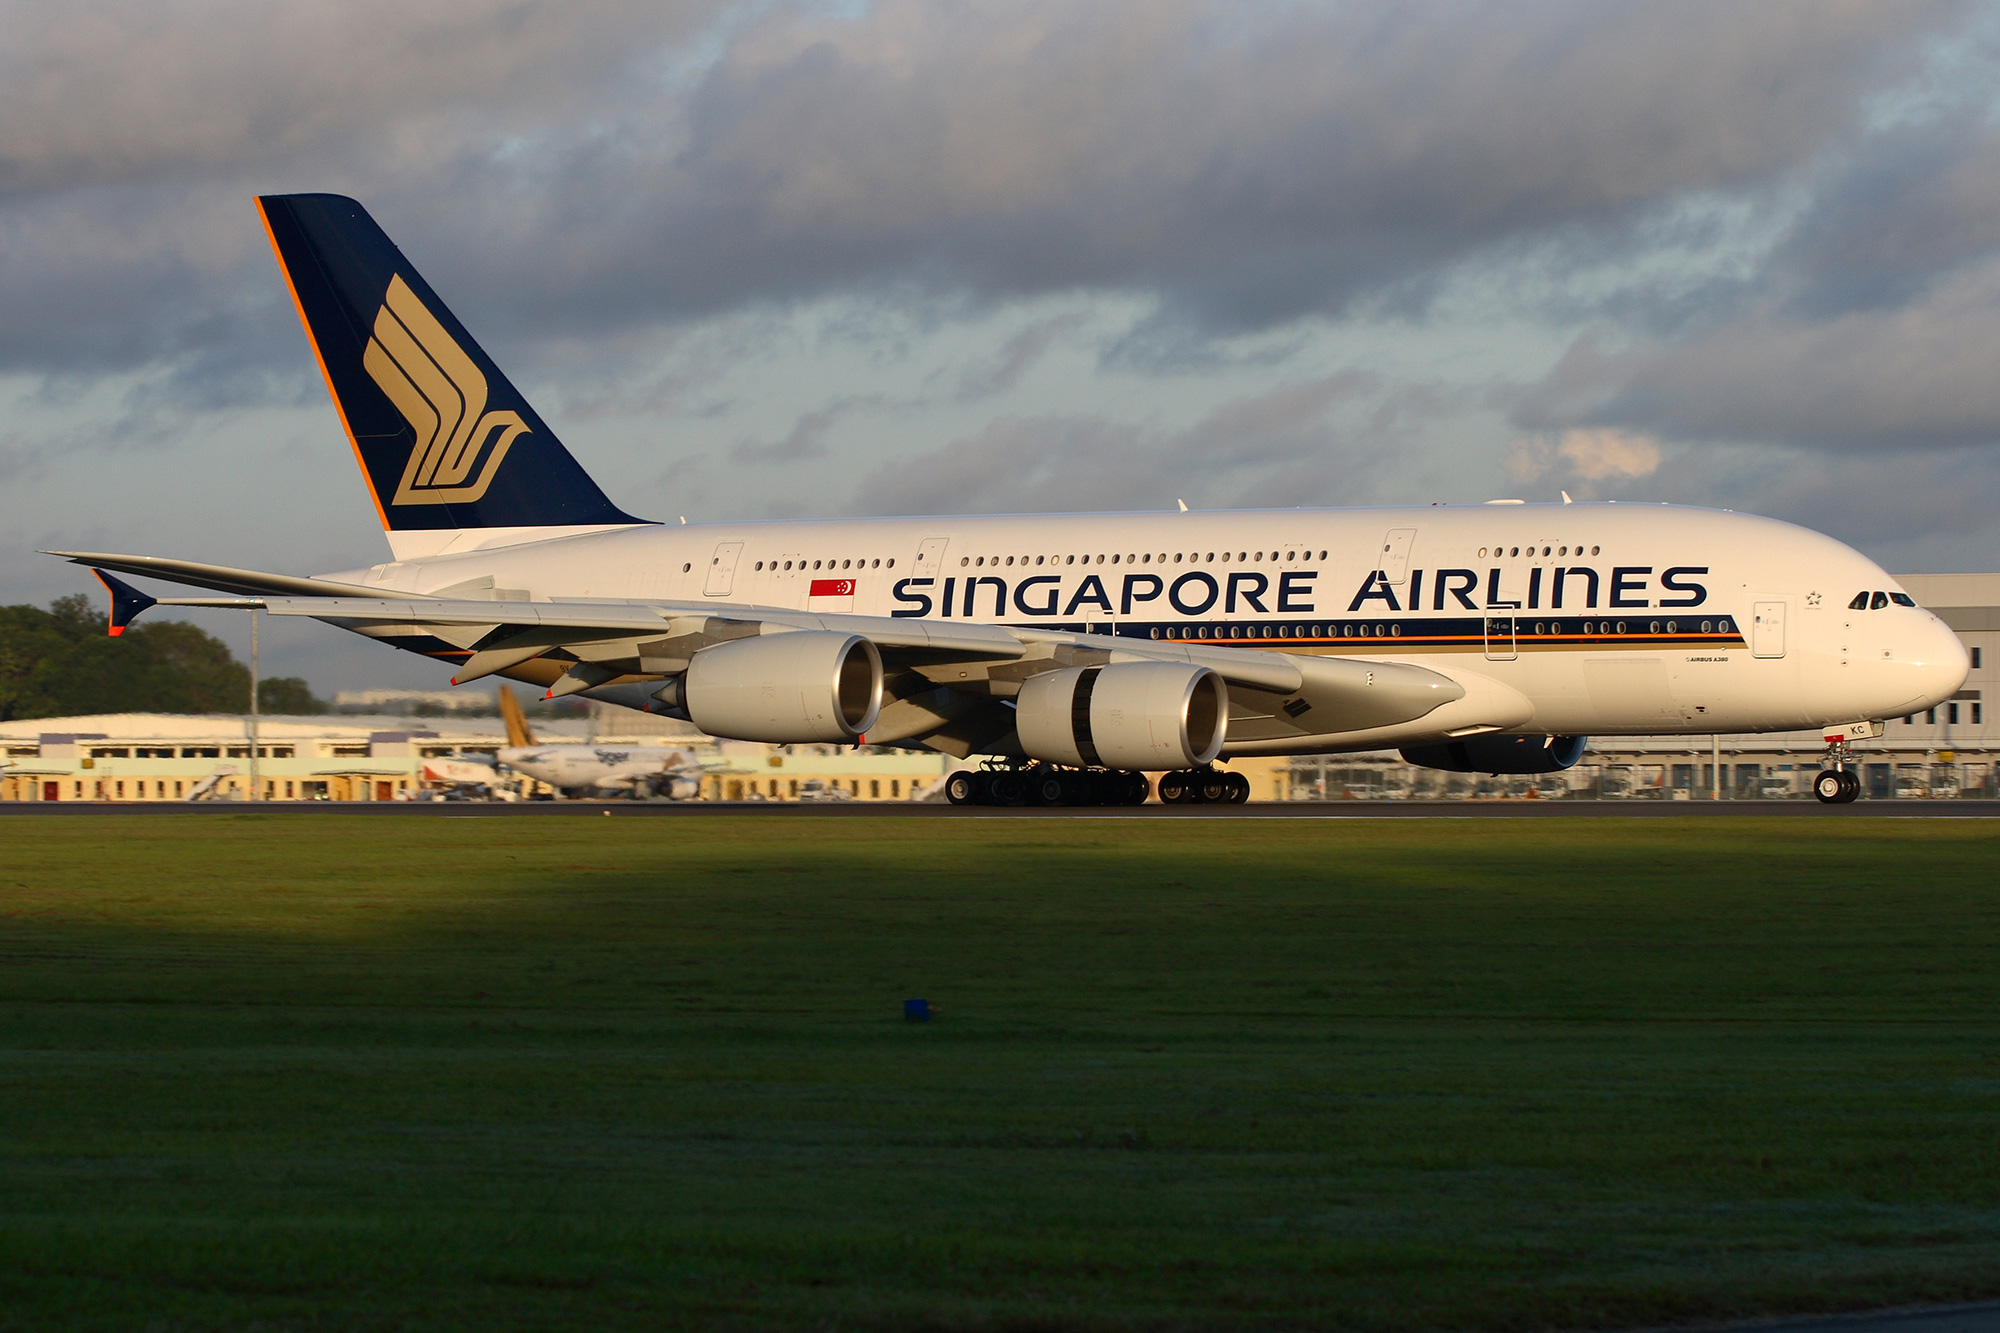 Photo Credit : Singapore Airlines